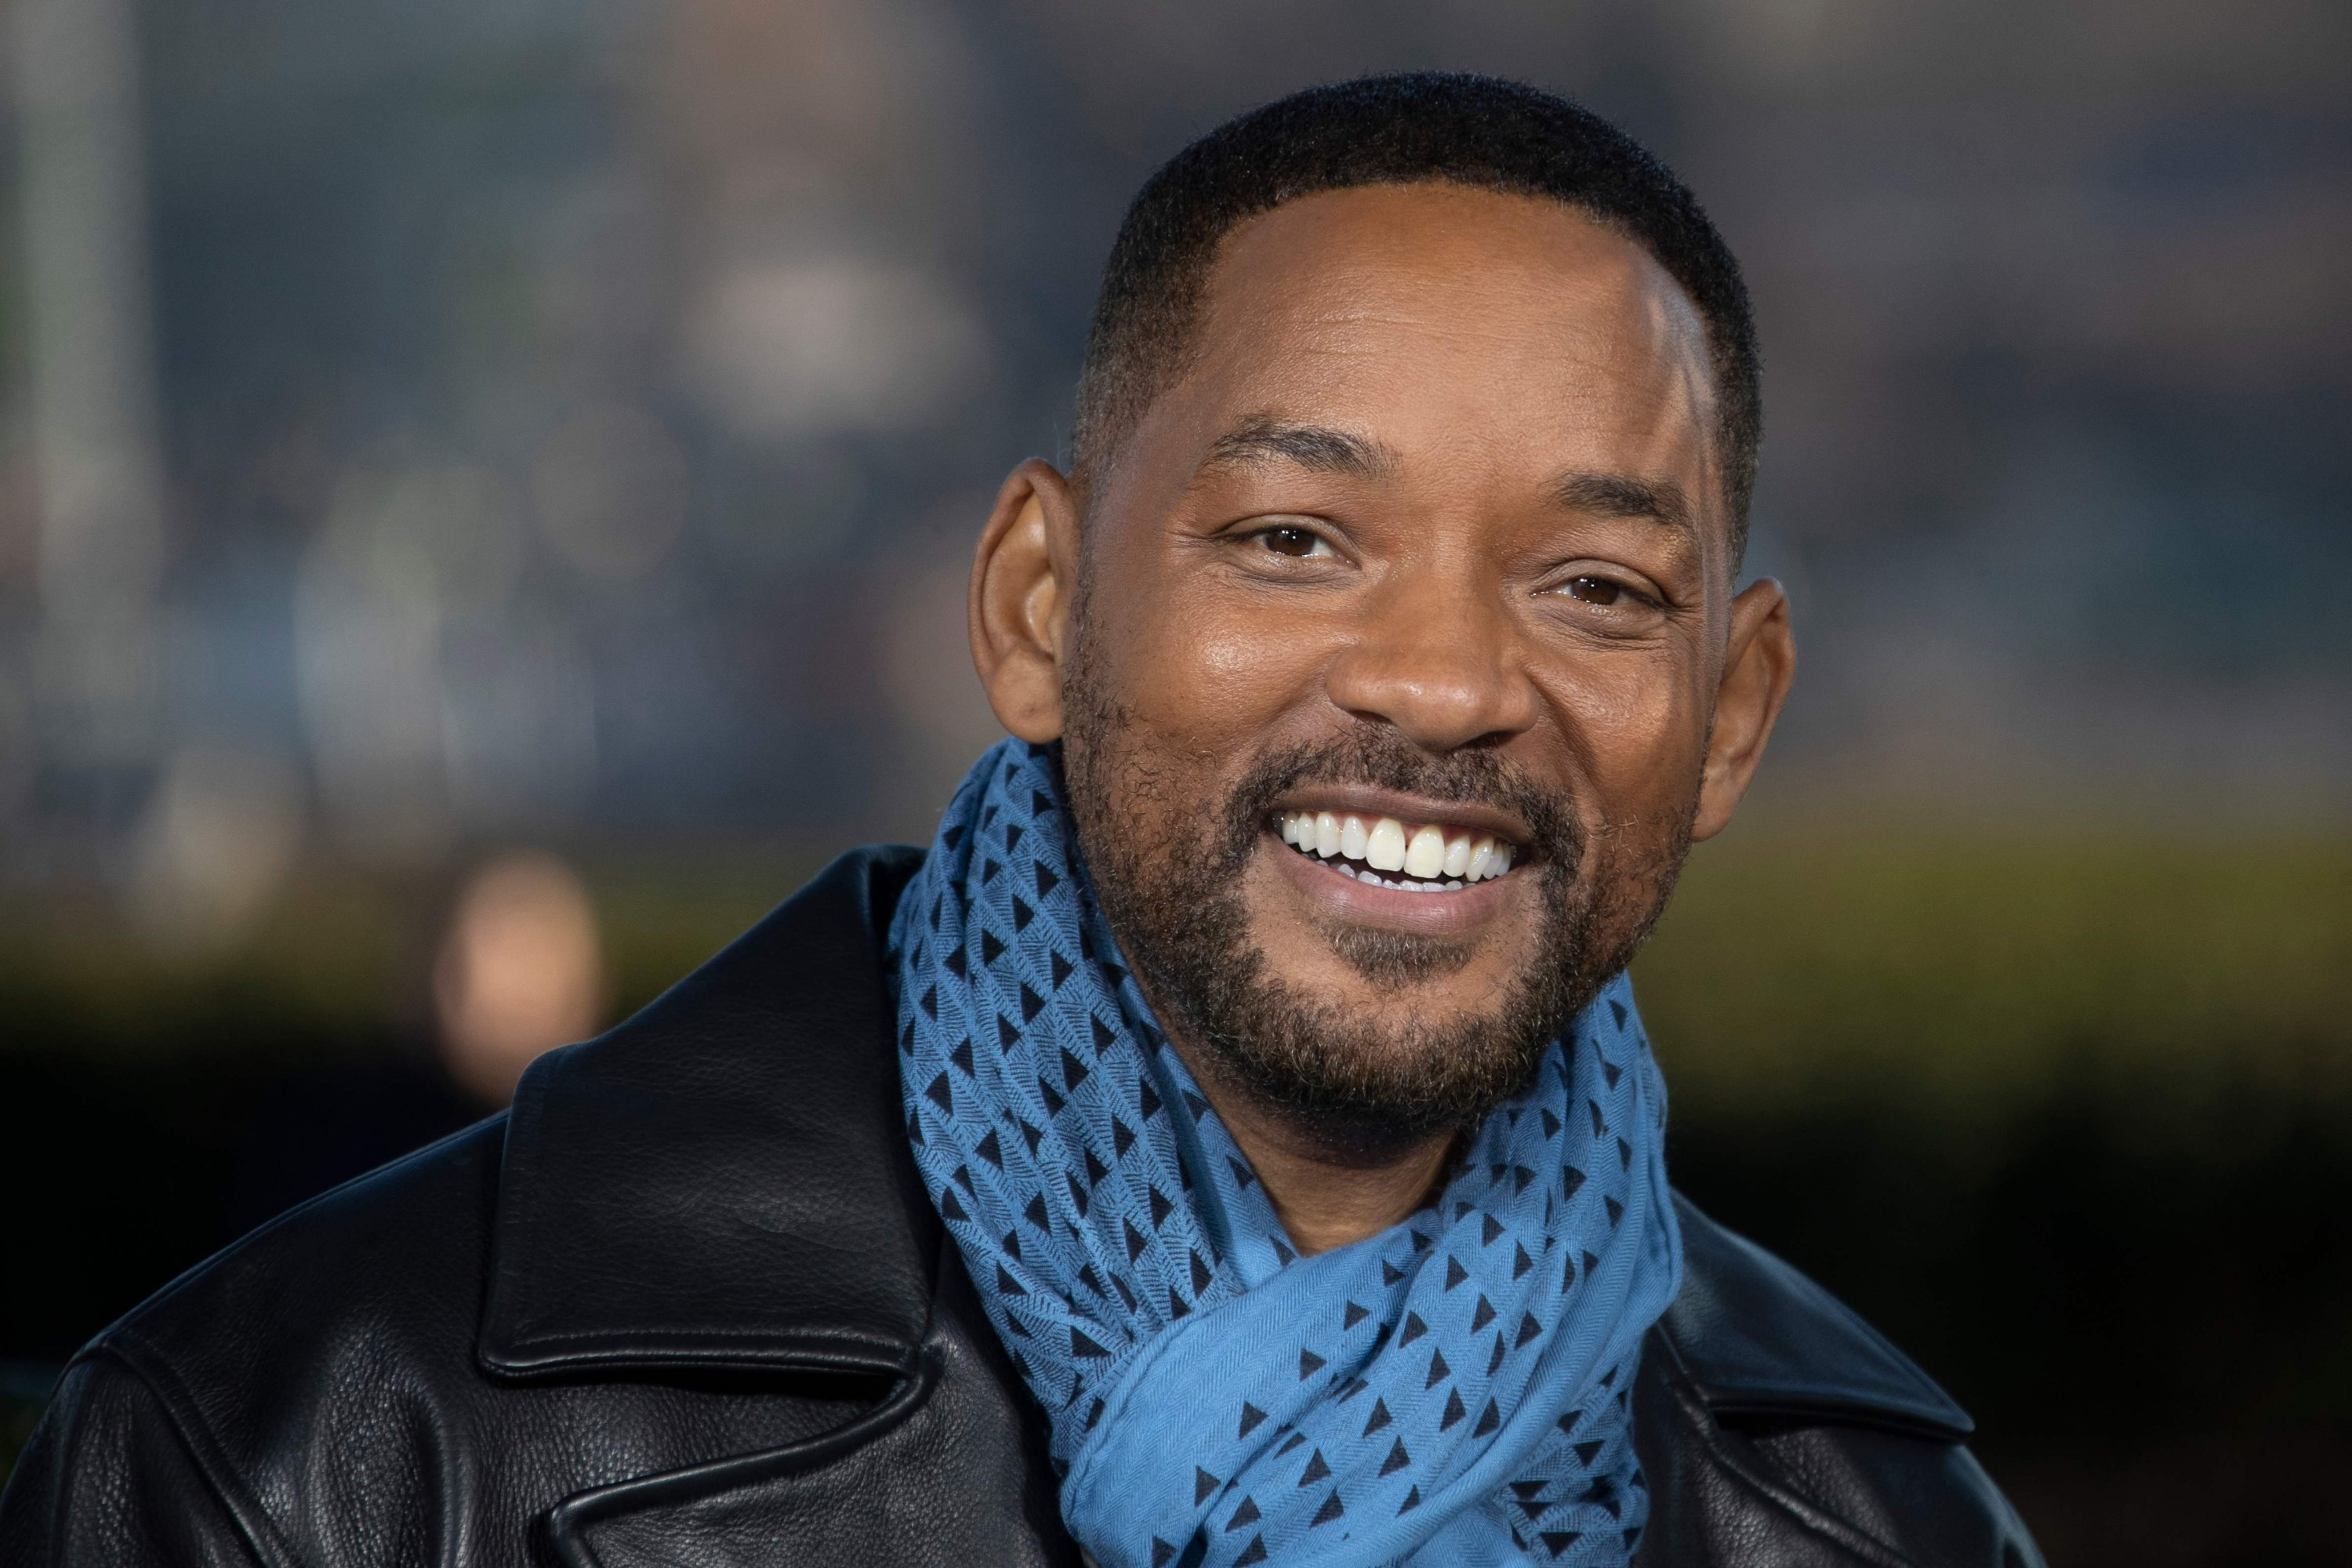 U.S. actor Will Smith poses at the 'Bad Boys For Life' launching photocall in front of the Eiffel Tower in Paris, Jan. 6, 2020.  (AFP PHOTO)